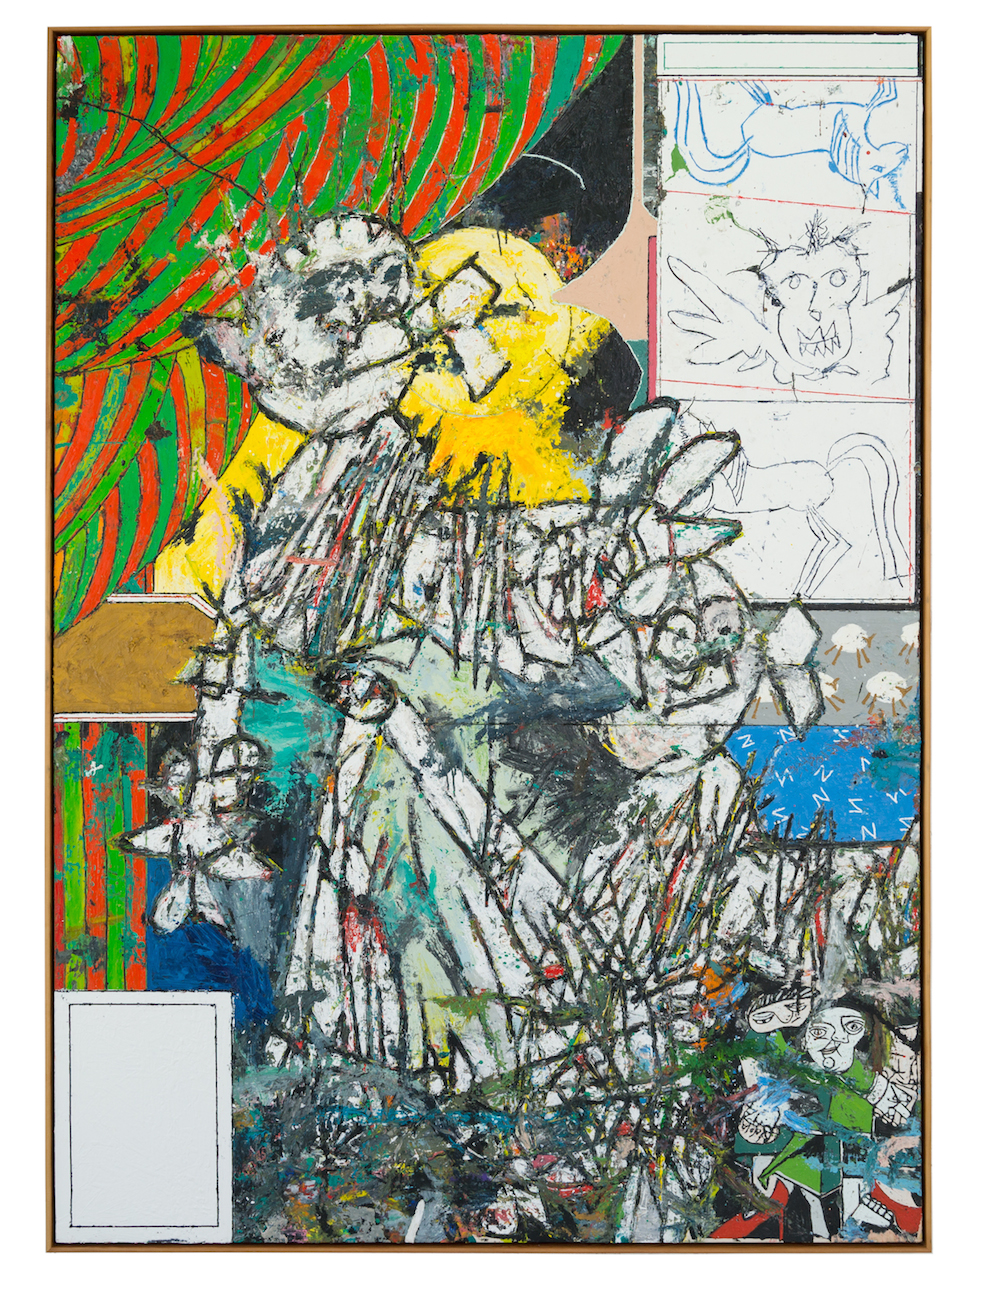 Large painting with red and green curtain, 2016. Oil and encaustic on canvas in artist's frame, 84 x 60 inches. Courtesy of the artist and Feuer/Mesler.